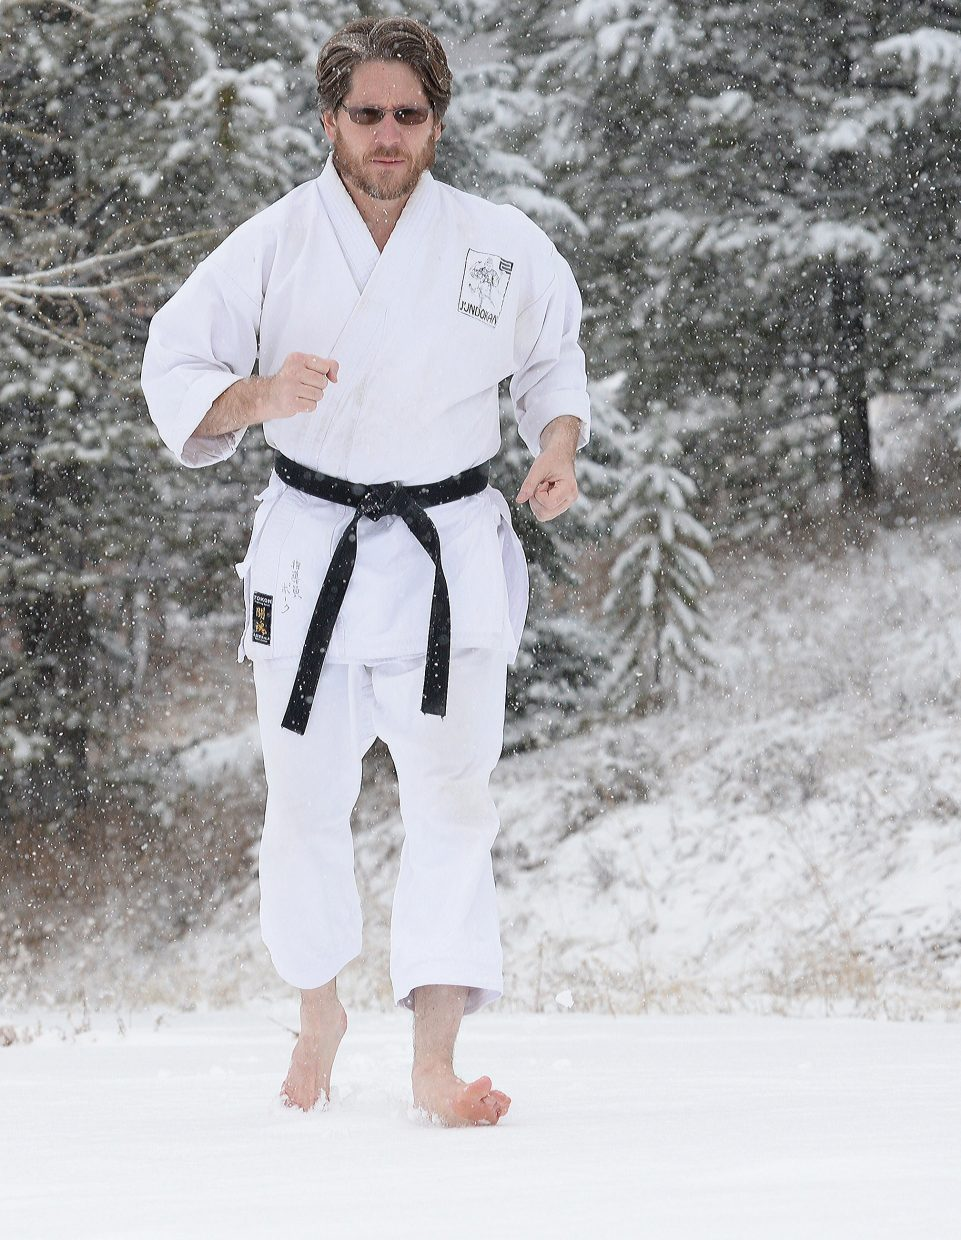 Sensei Michael David Bauk runs in the snow Monday morning as part of a workout to increase mental toughness. Bauk said he has made it a tradition to run barefoot on the first day the snow is deep enough and then a couple of more times during the winter. He also takes his classes at Rocky Mountain Karate Academy out to run barefoot in the snow as a way of teaching discipline.